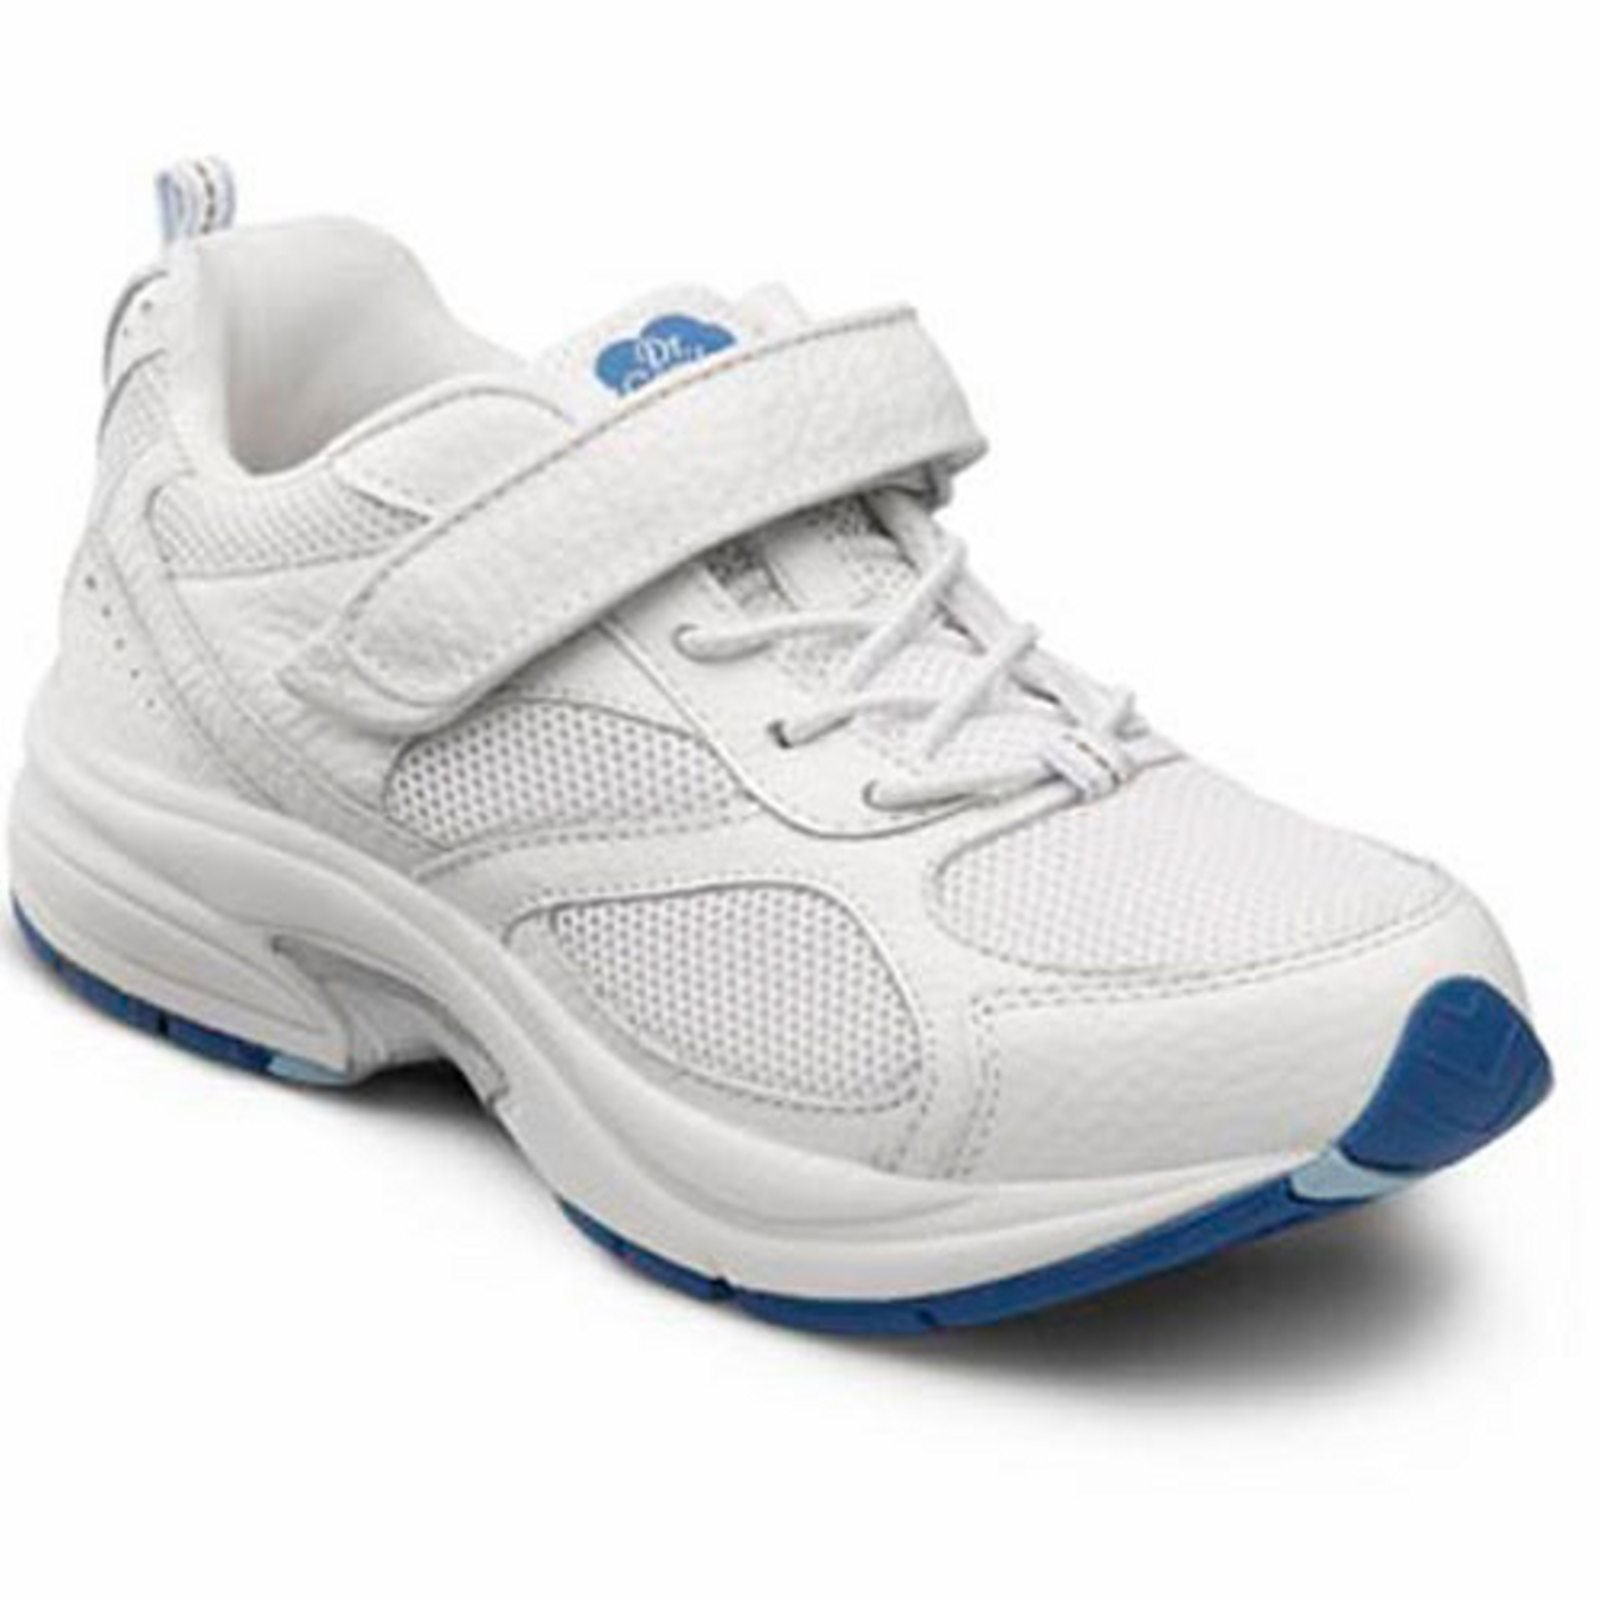 Dr. Comfort Victory Women's Therapeutic Extra Depth Athletic Shoe: White 9.5 Medium (A-B) Lace